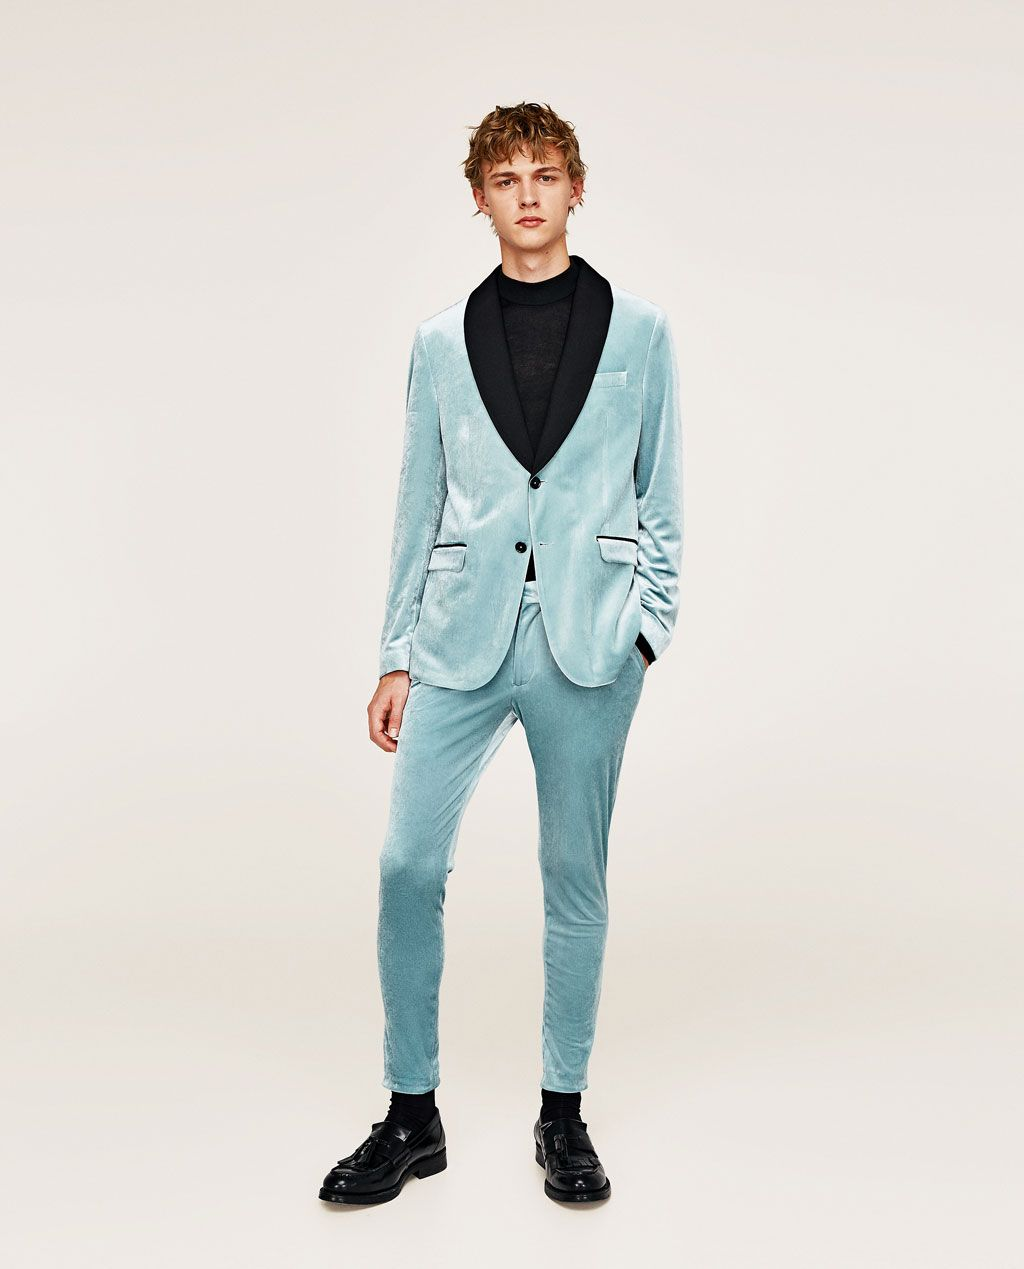 3560178cd3 Image 1 of SKY BLUE VELVET BLAZER from Zara | Band Style | Blue ...